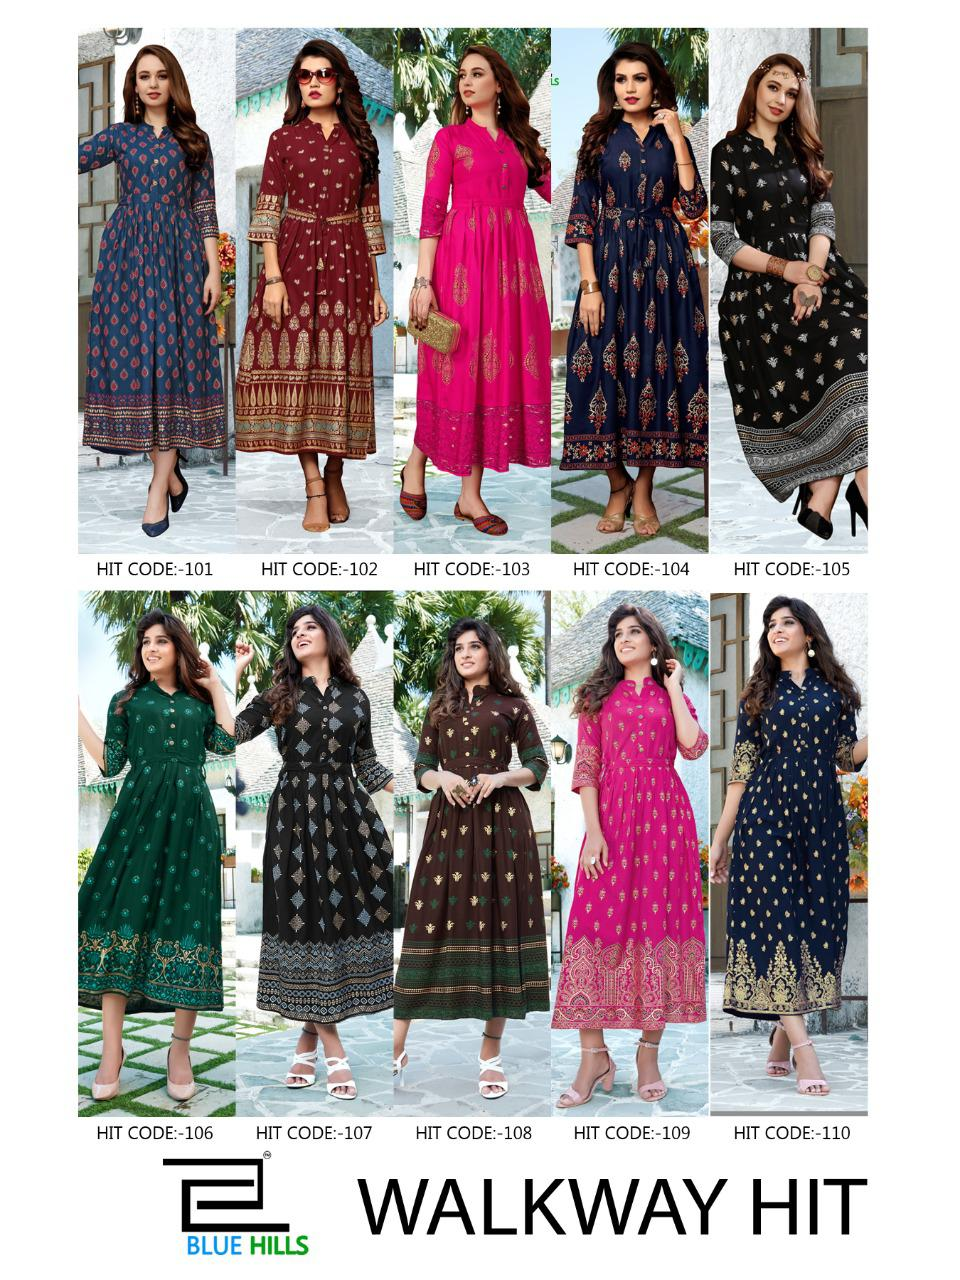 Blue Hills Walkway Hit Kurti Wholesale Catalog 10 Pcs 11 - Blue Hills Walkway Hit Kurti Wholesale Catalog 10 Pcs